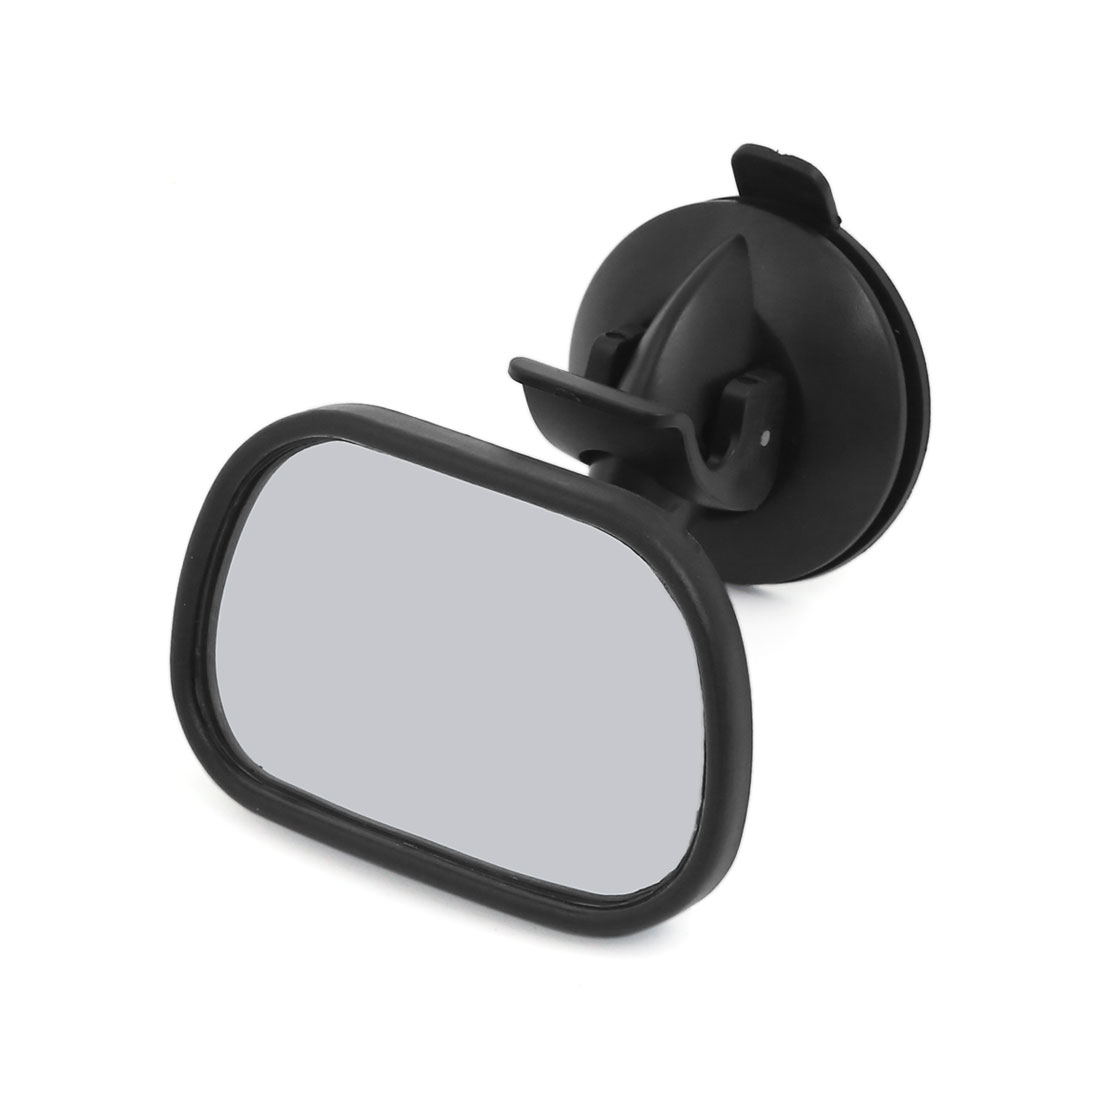 Universal Car Child Baby Care Windscreen Mount Rear View Safety Auxiliary Mirror Black